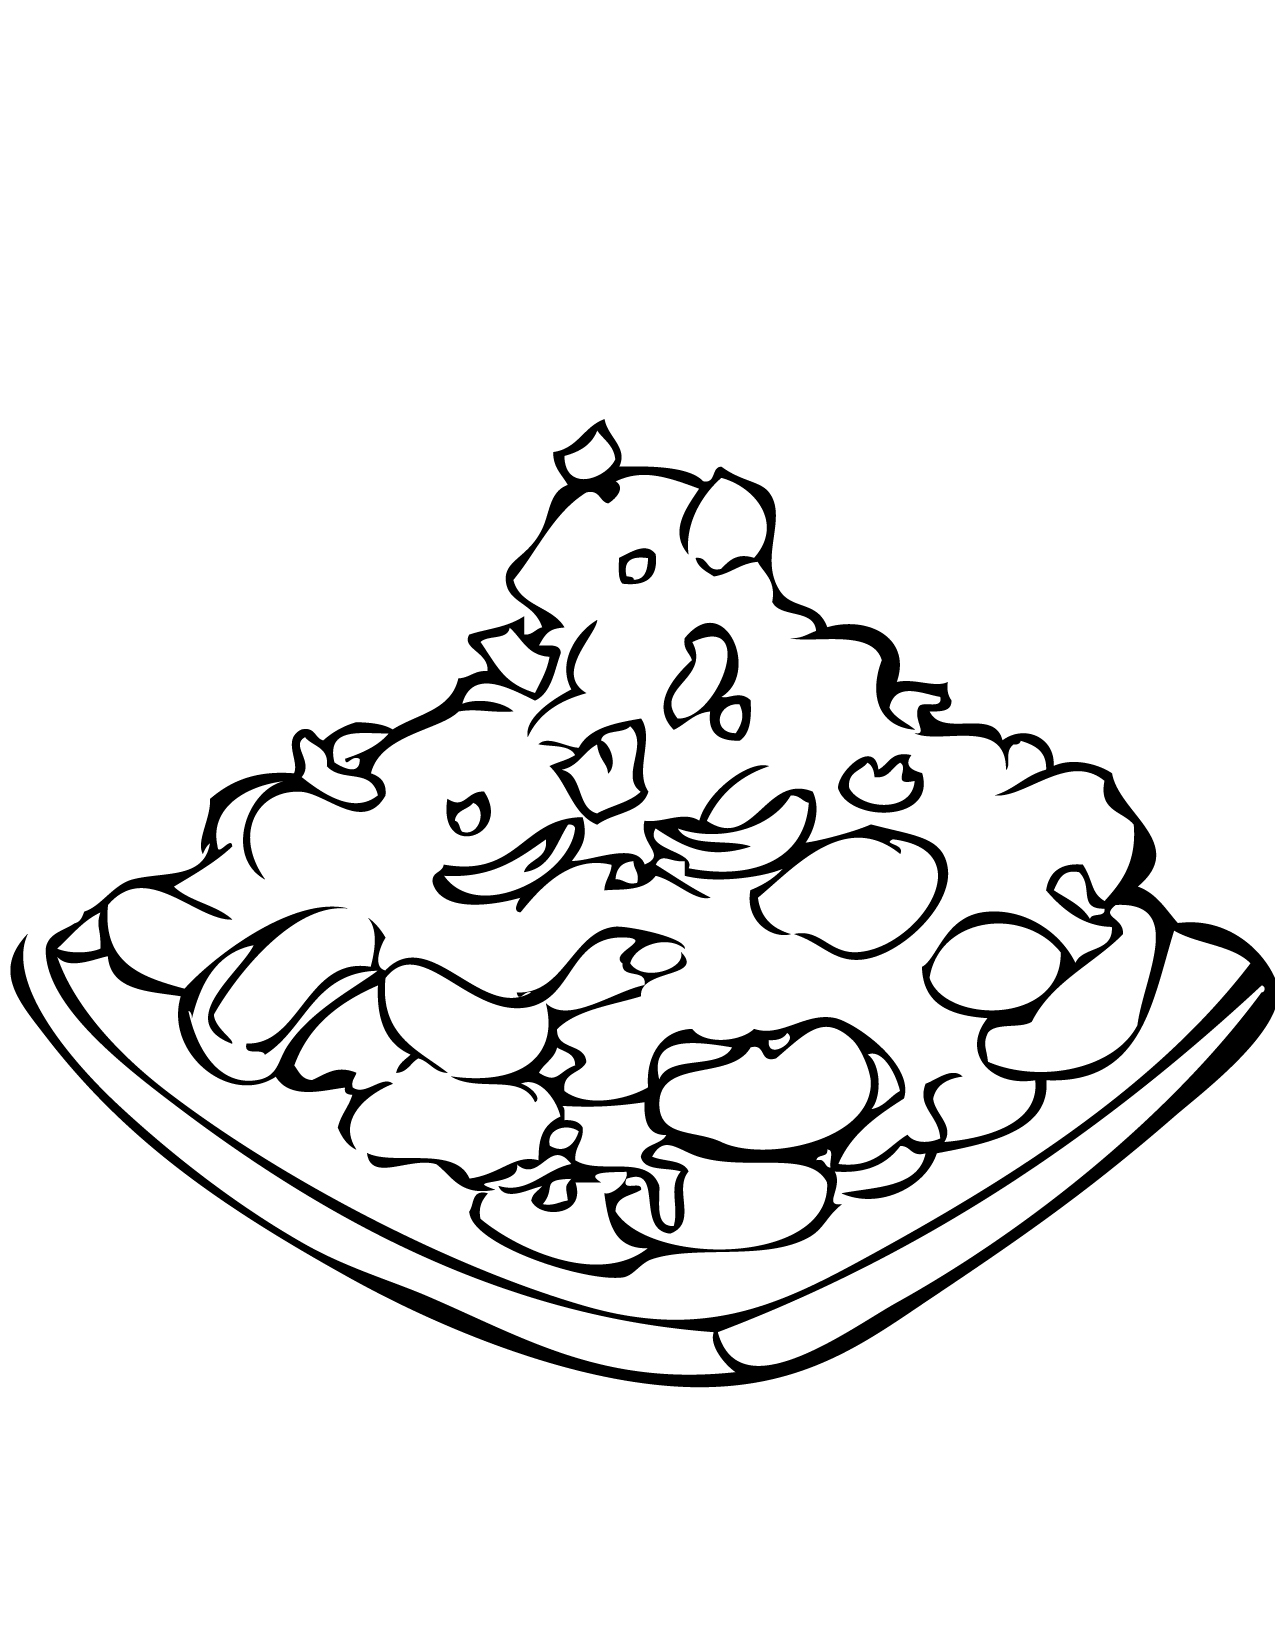 Rice - Free Colouring Pages